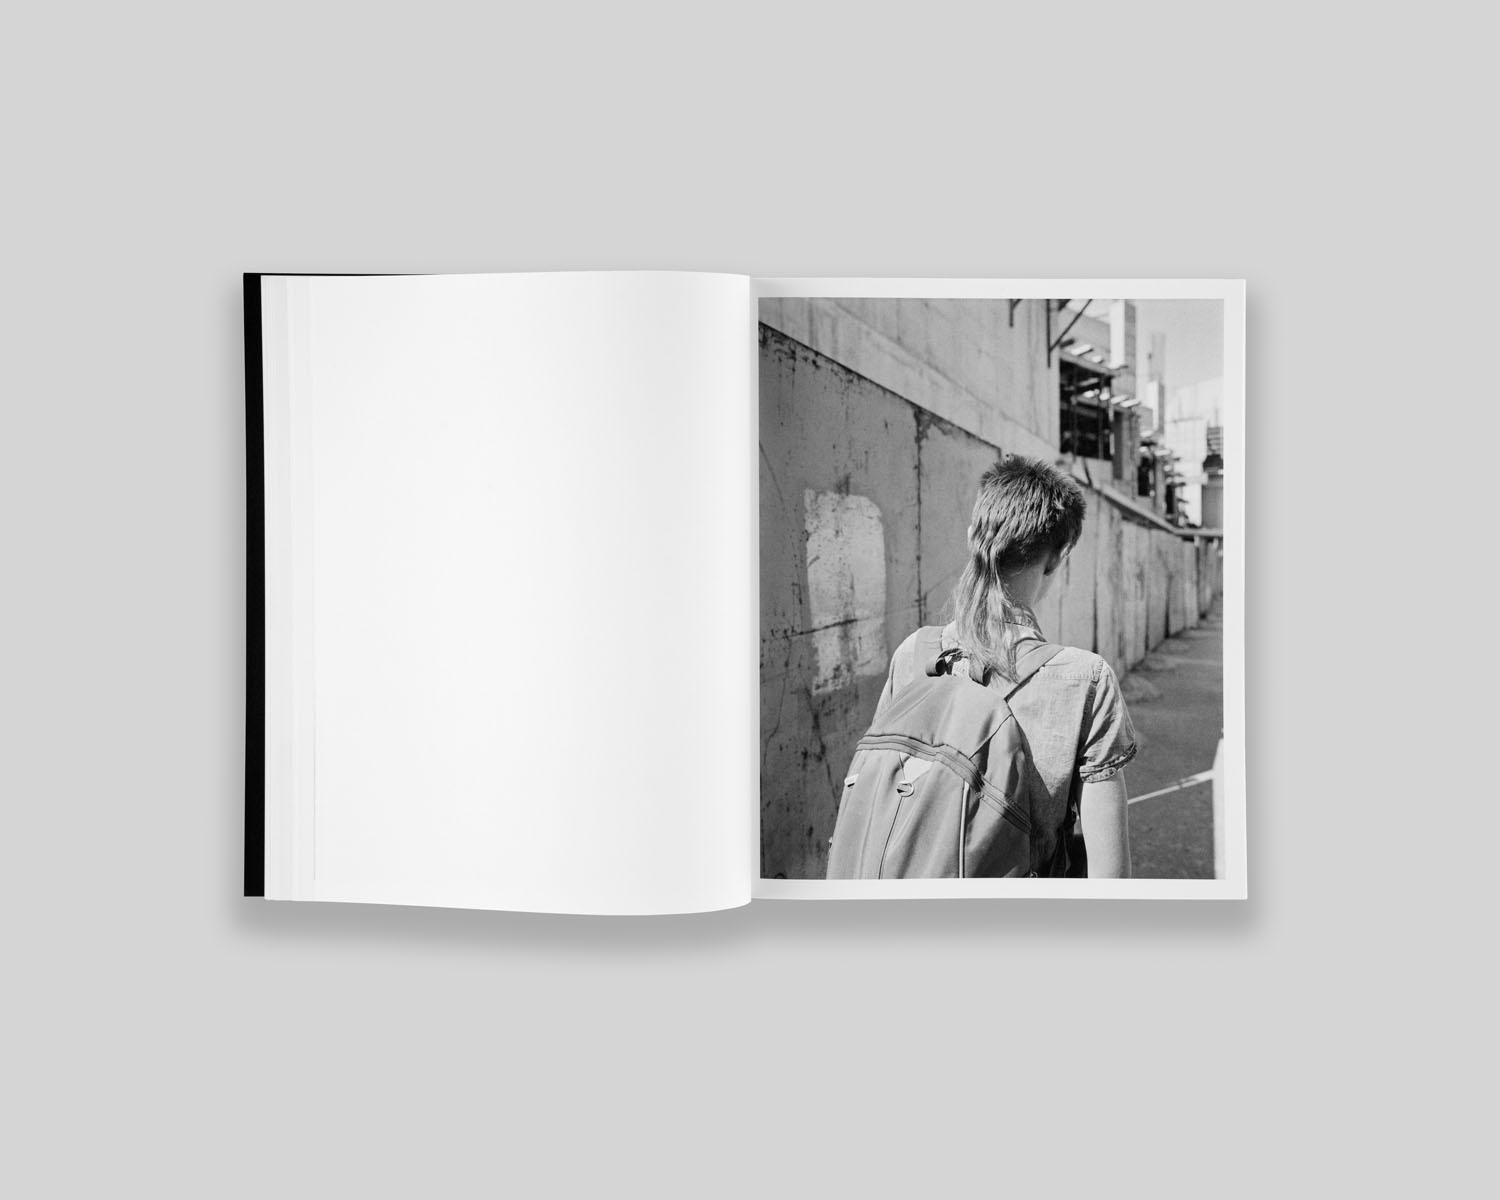 bertrand cavalier concrete doesn't burn book published by fw:books 2020